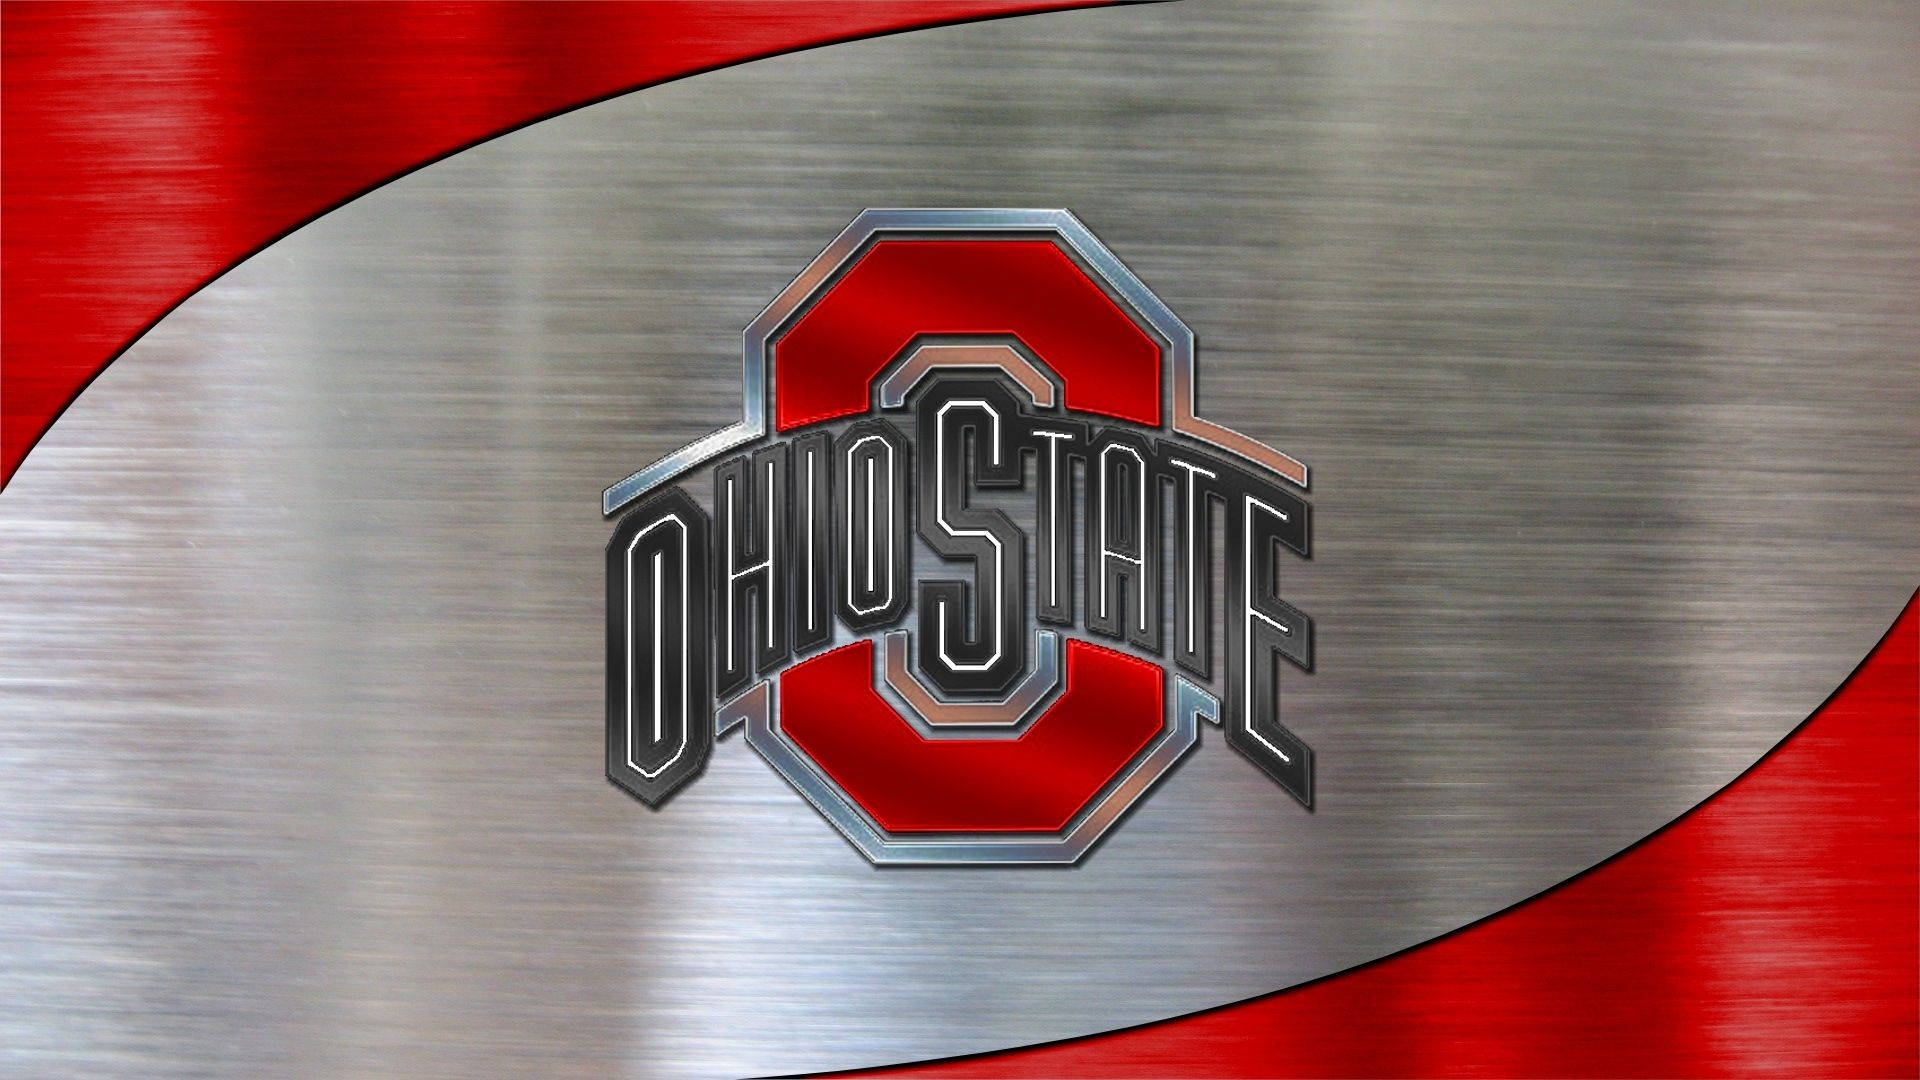 10 Best Ohio State Wallpaper Free Full Hd 1080p For Pc Background 2019 Ohio State Buckeyes Football Ohio State Wallpaper Ohio State Football Wallpaper